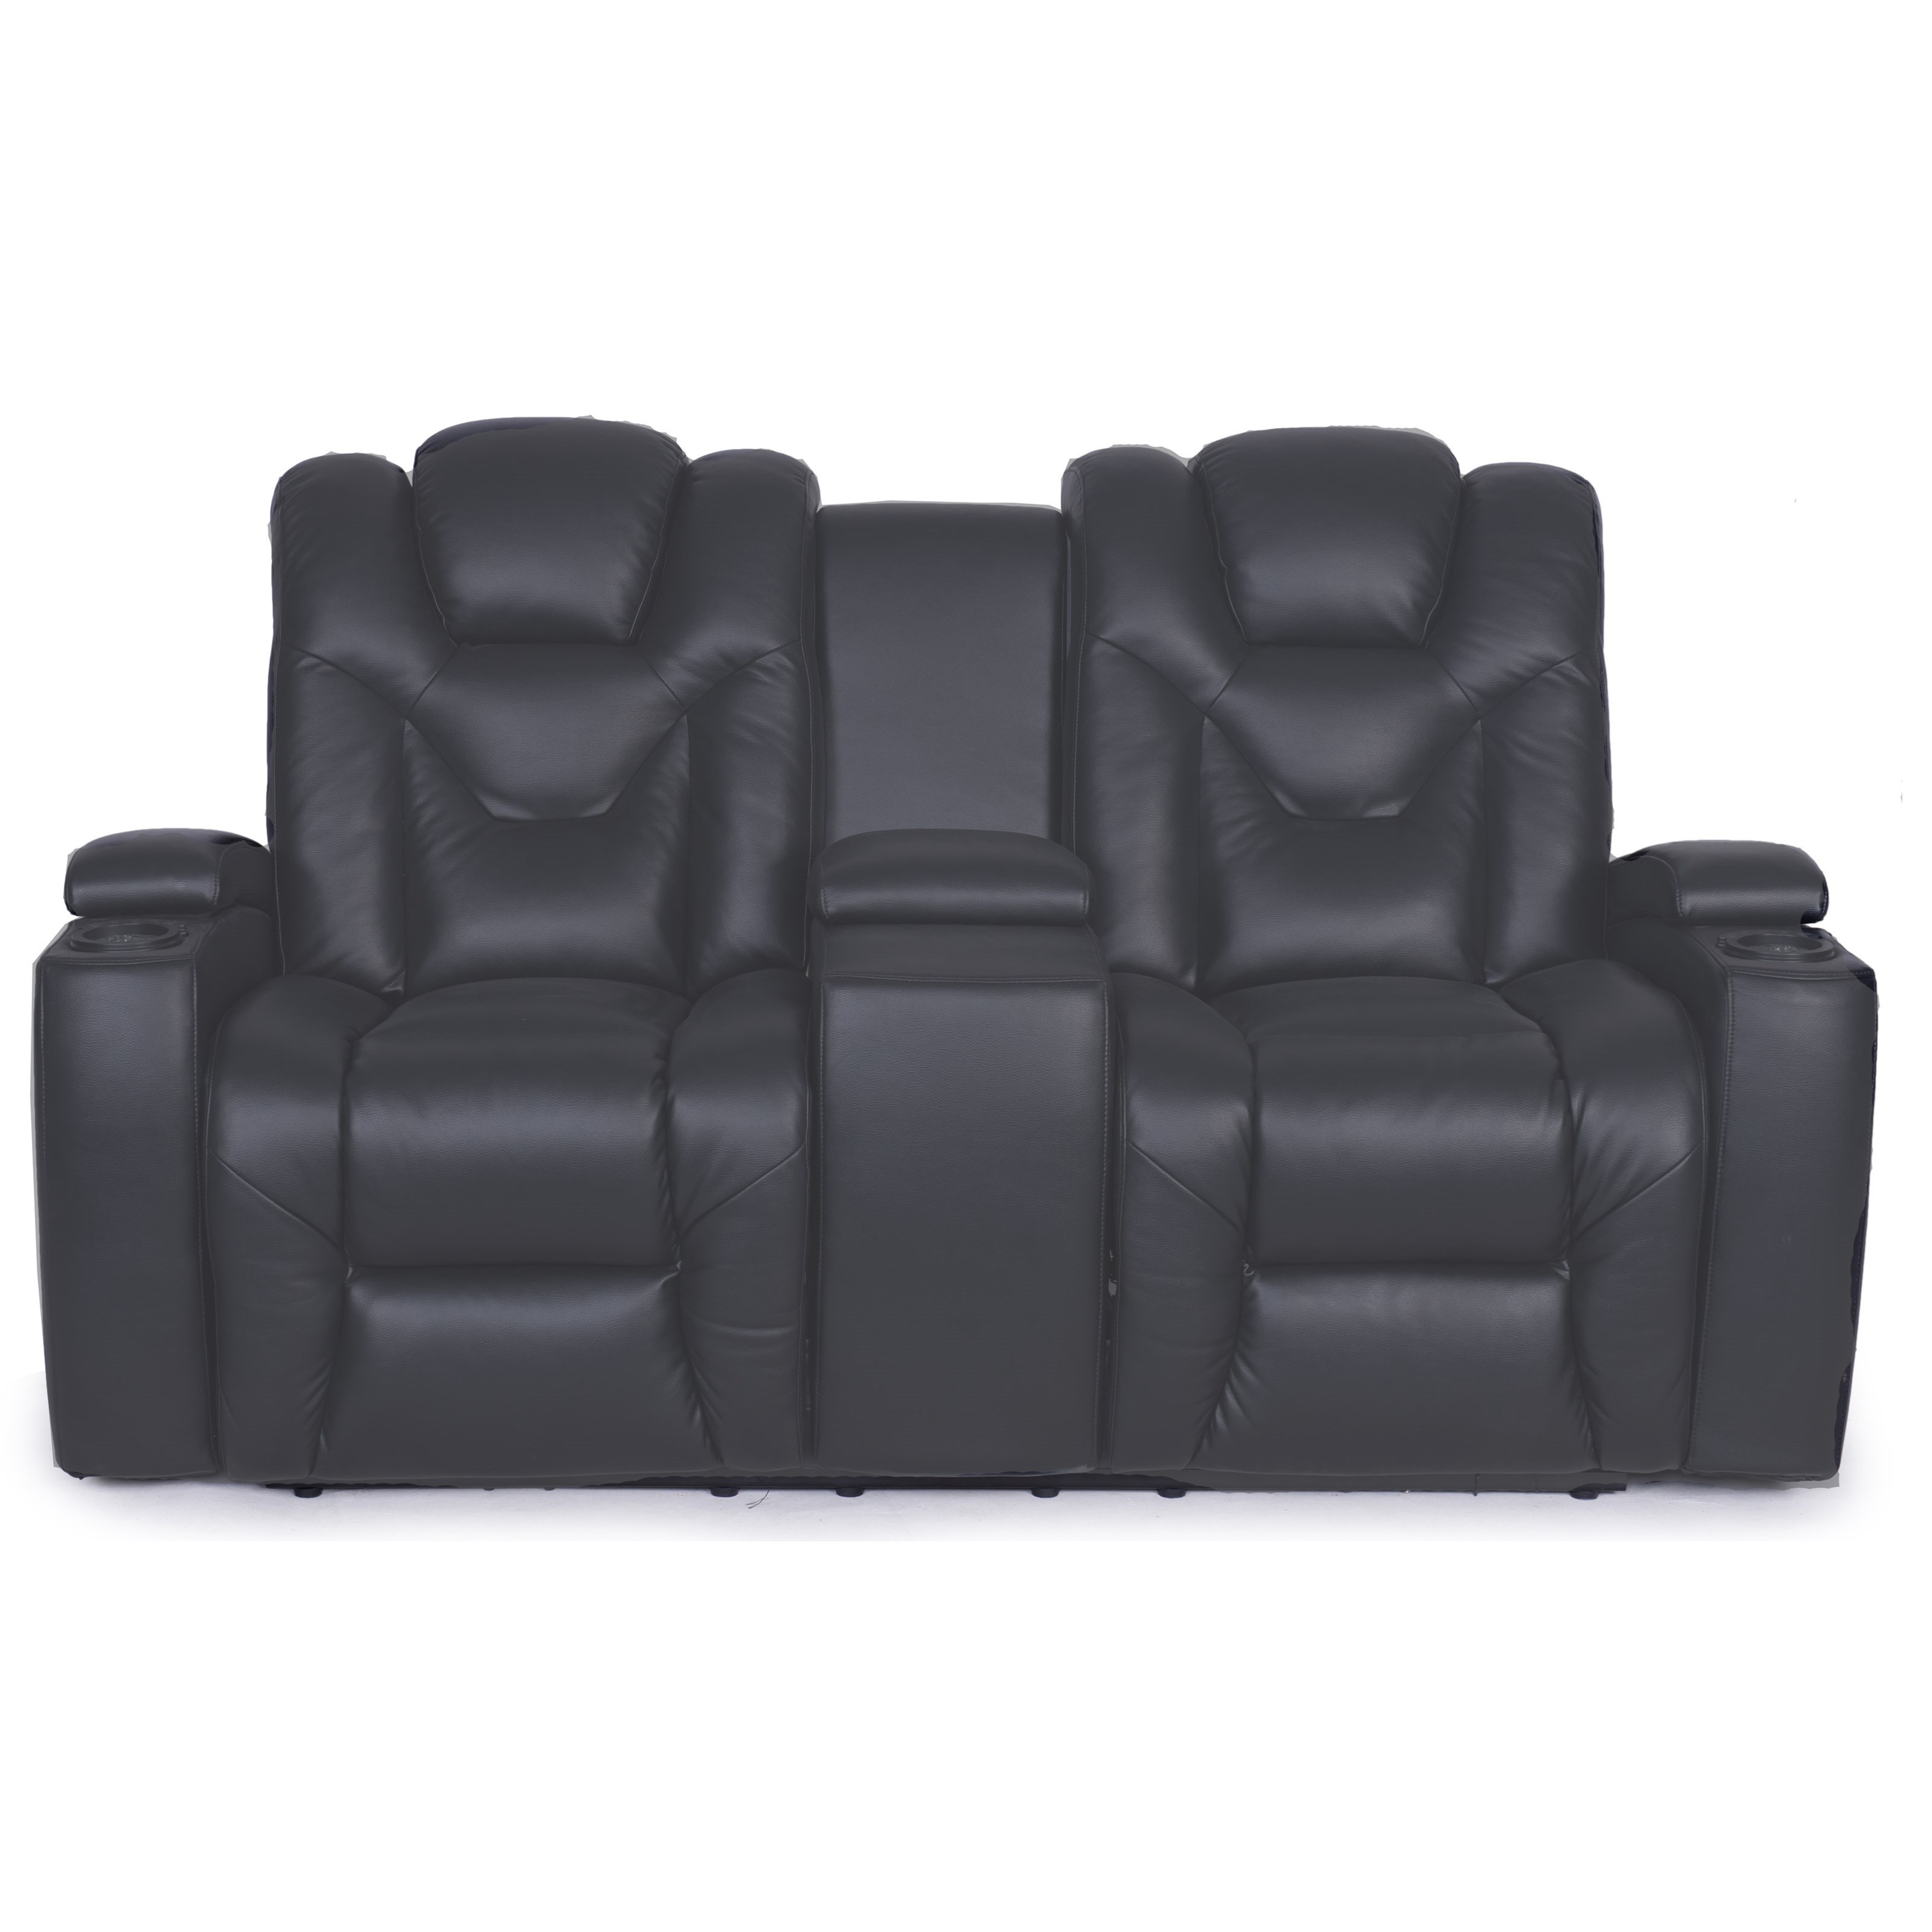 Synergy Home Furnishings 377 Power Reclining Loveseat With Storage Console  And Storage Arms   Zaku0027s Fine Furniture   Reclining Love Seats